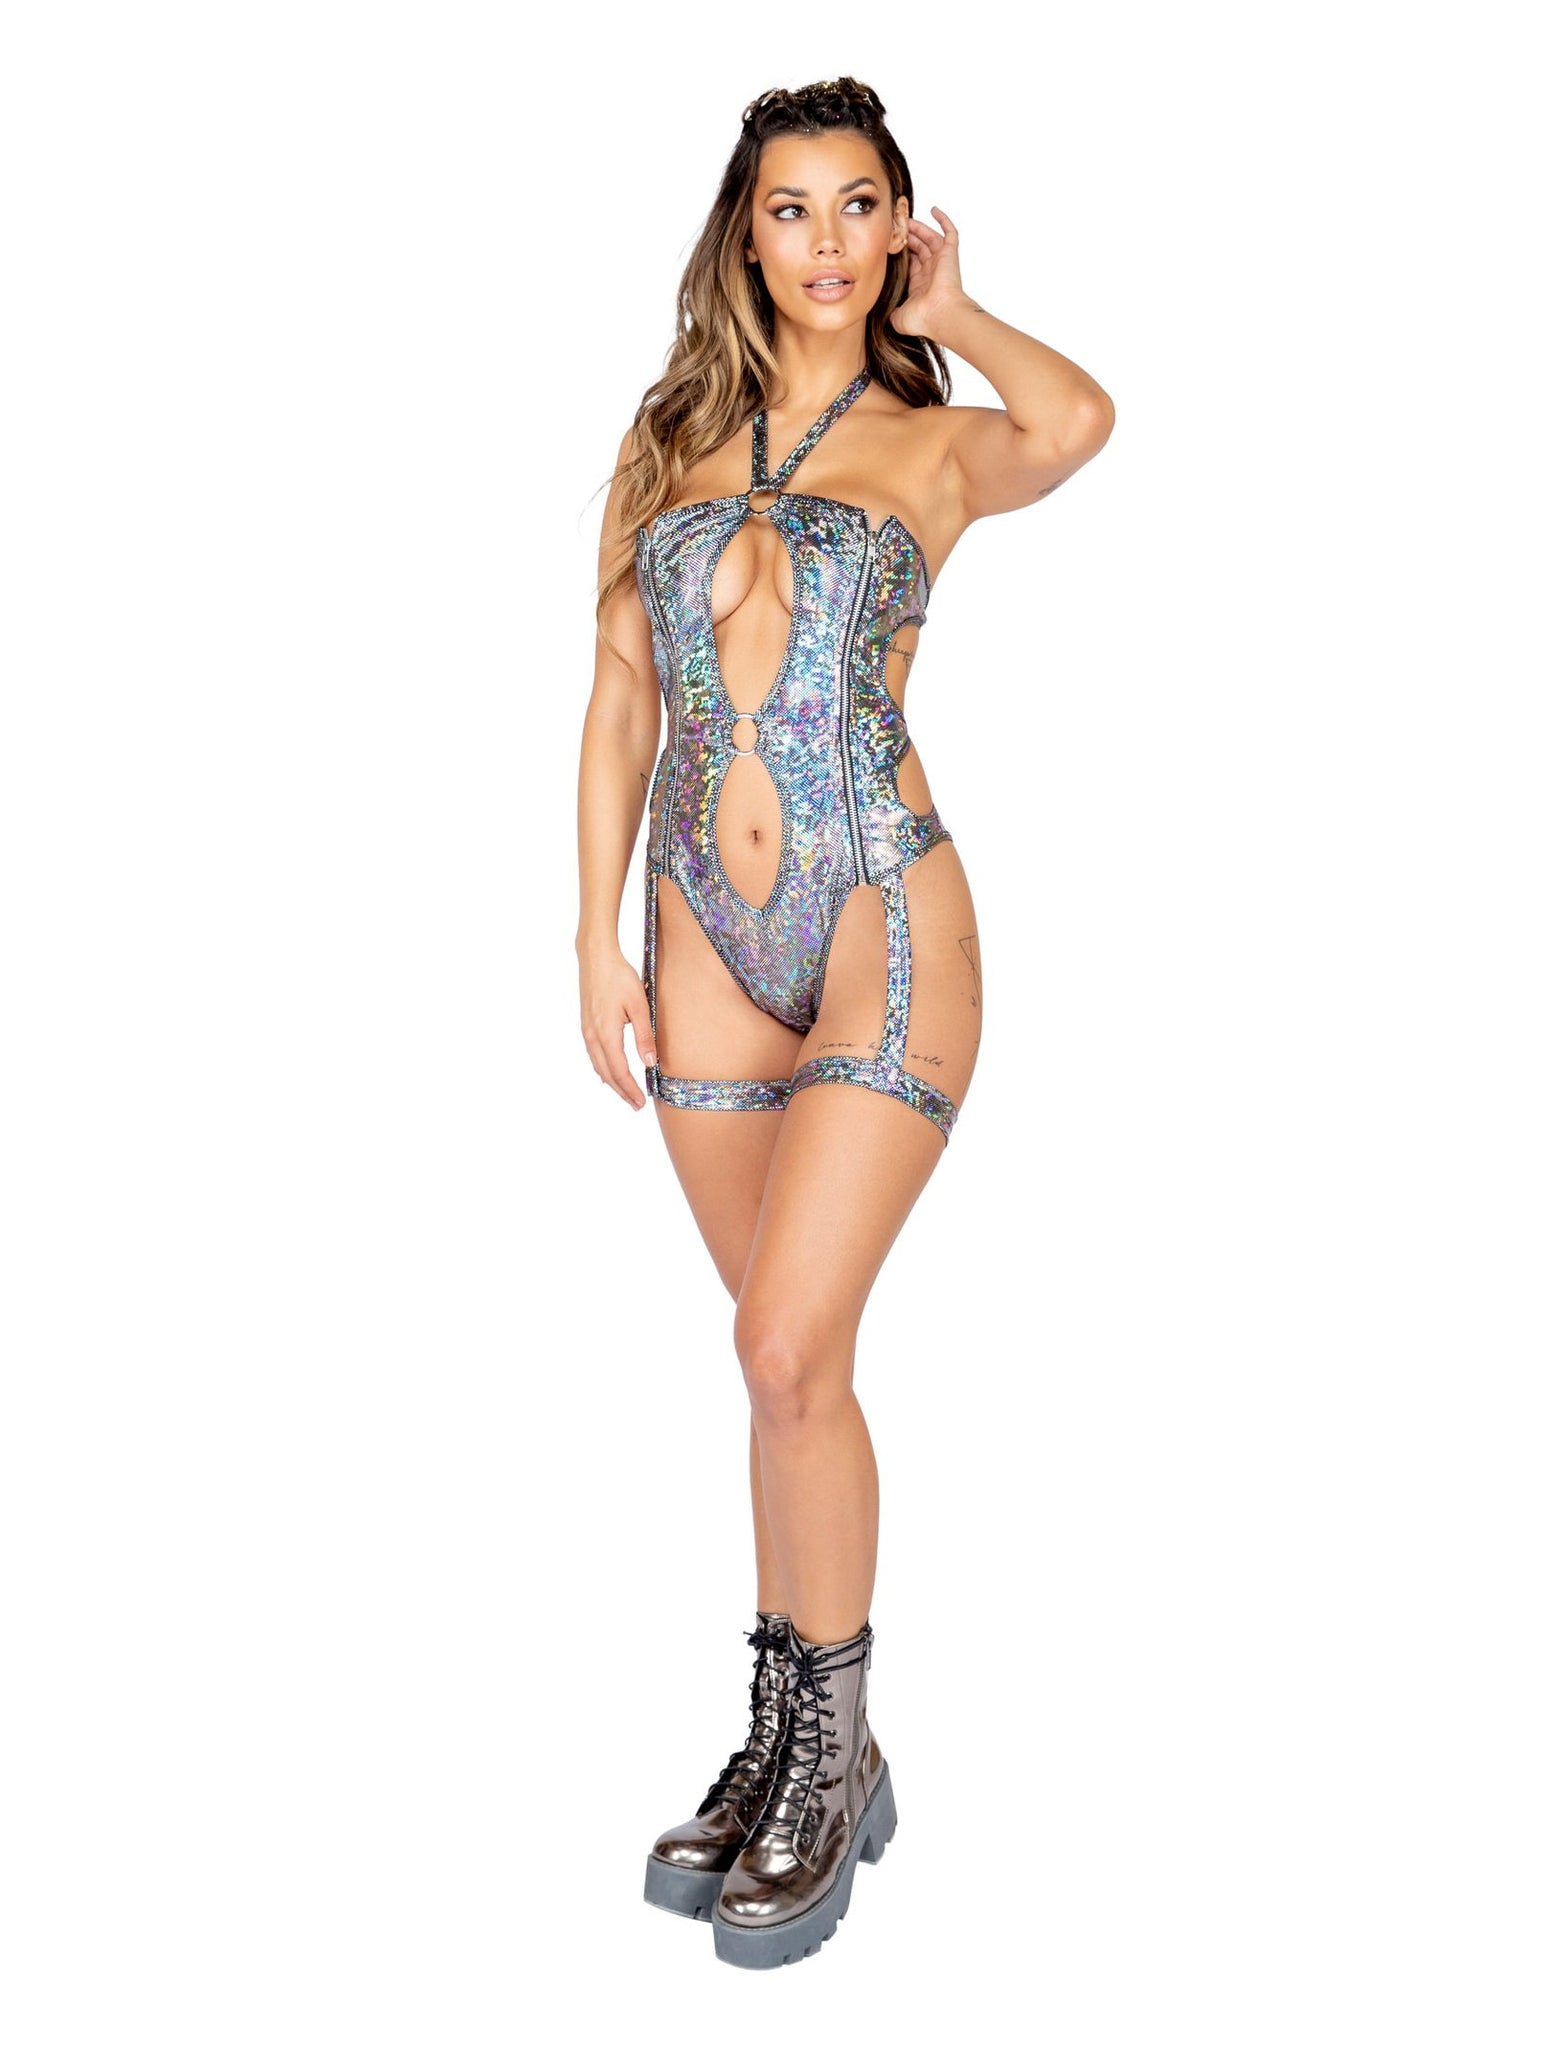 3815 - 1pc Iridescent Gartered Keyhole Romper with Zipper Closure